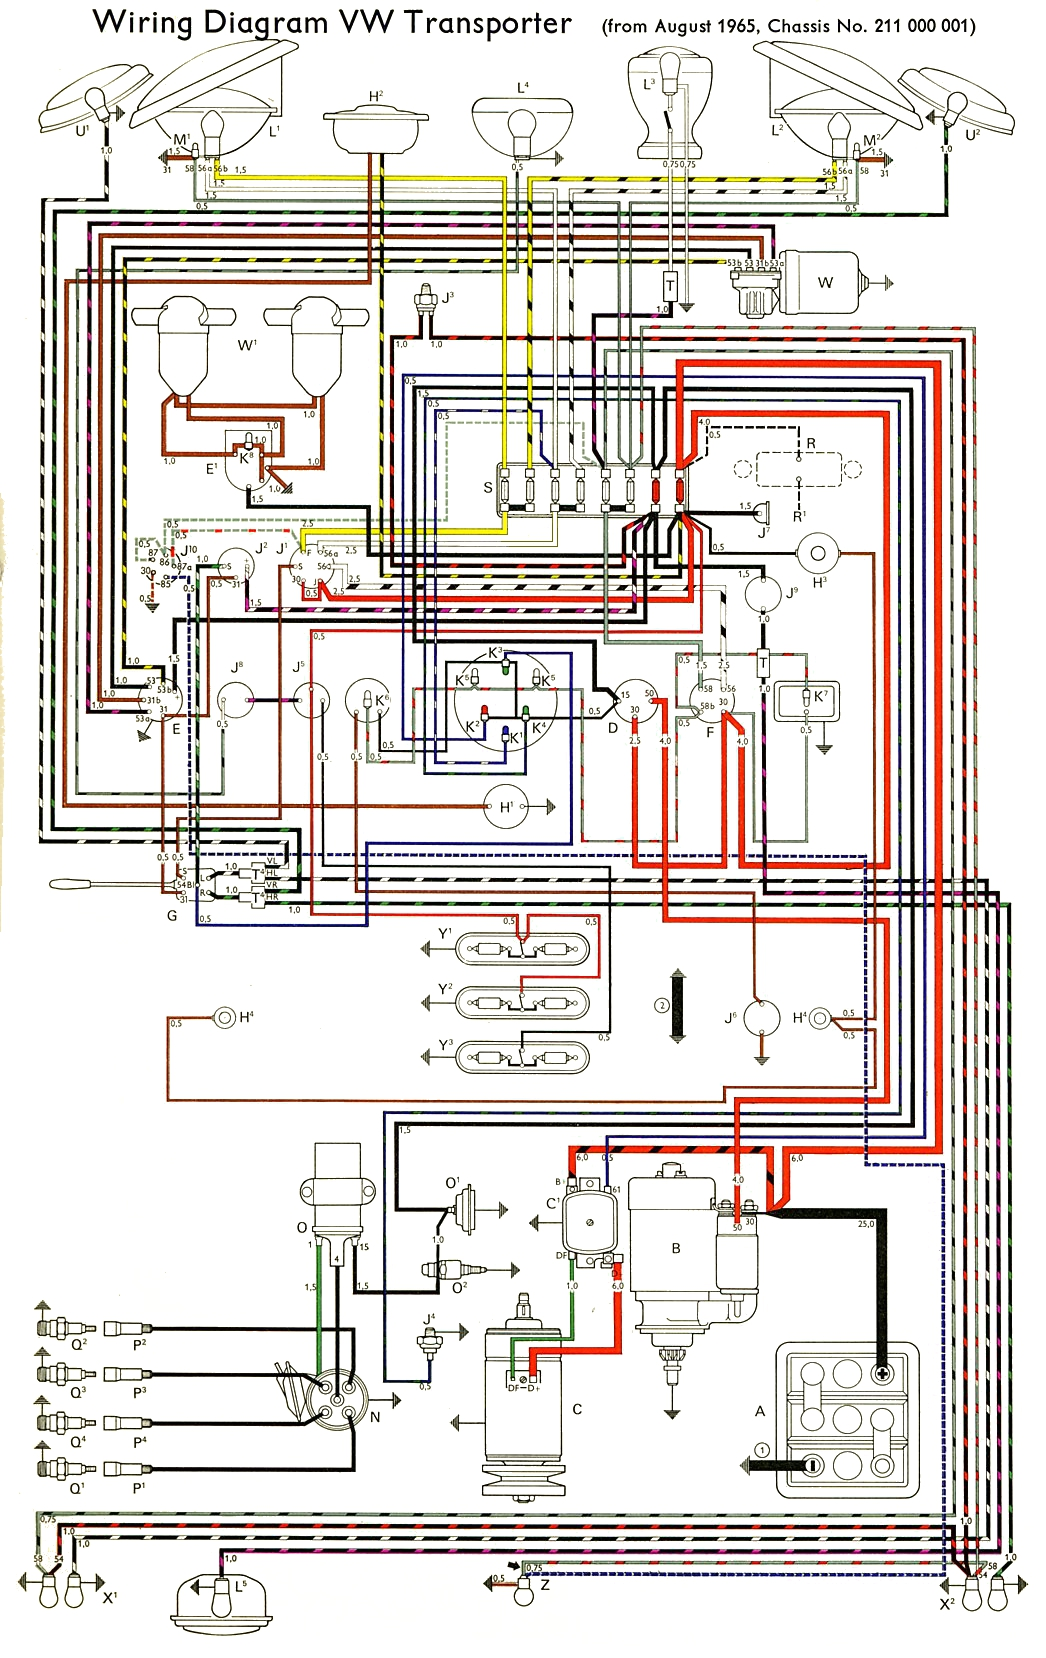 thesamba com type 2 wiring diagrams rh thesamba com Basic Electrical Schematic Diagrams Simple Wiring Diagrams